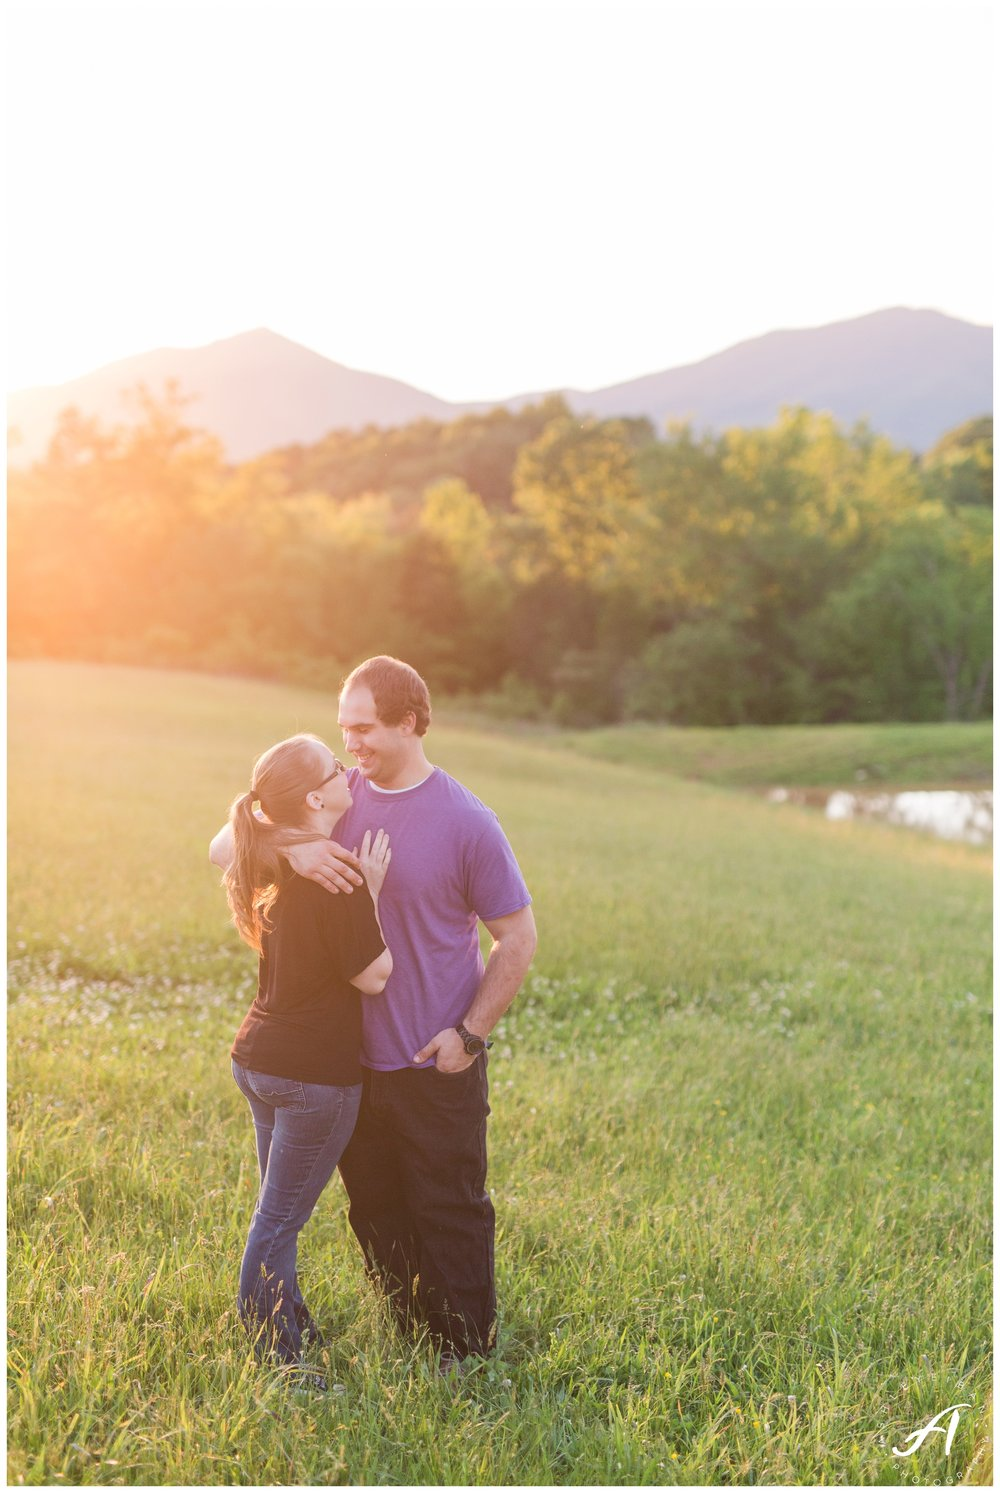 Bedford Virginia Engagement Session || Mountain view engagement session || Ashley Eiban Photography || www.ashleyeiban.com